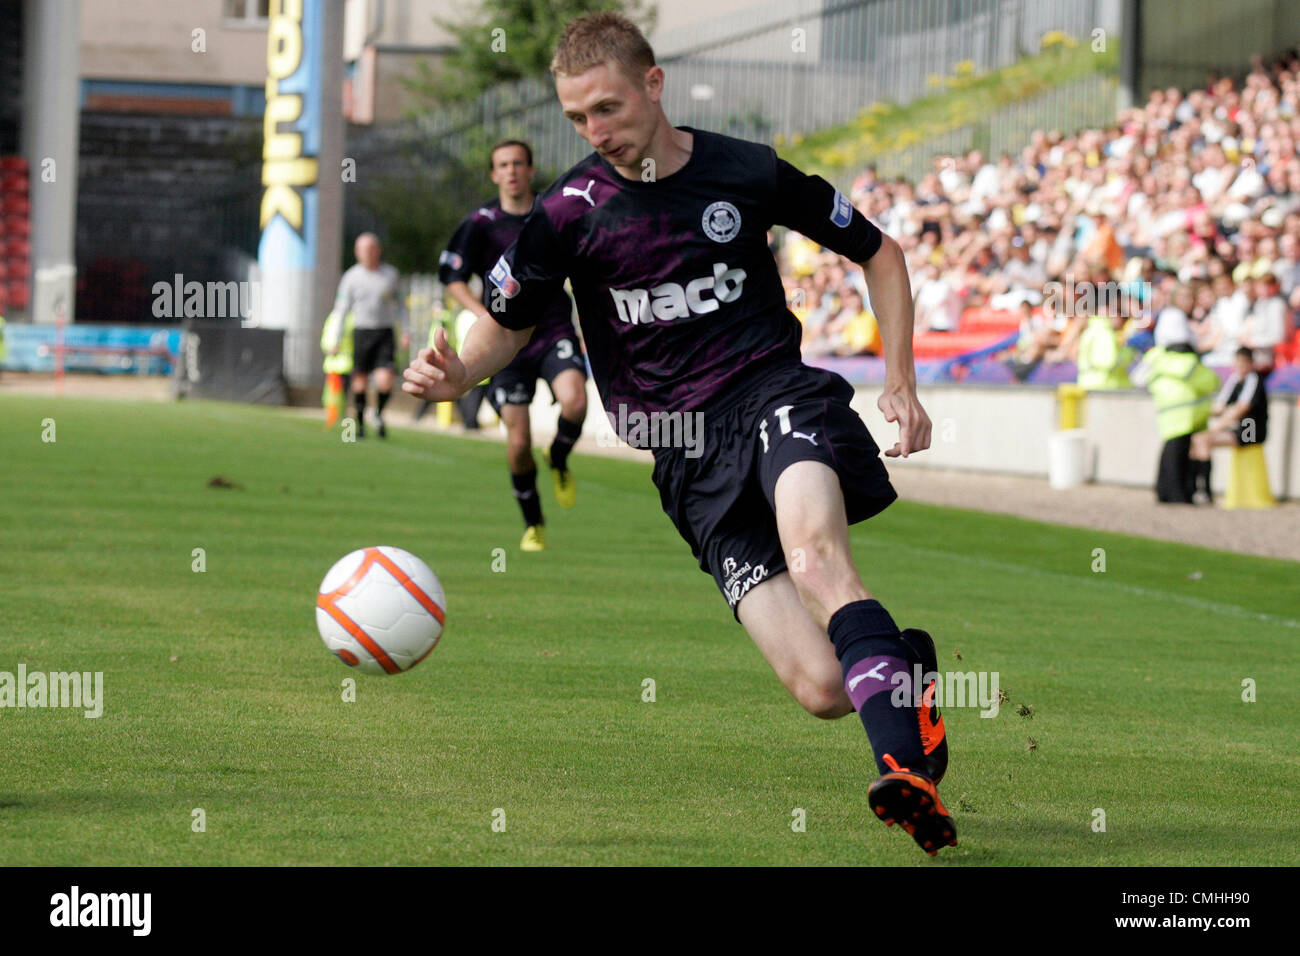 11th Aug 2012. 11.08.2012 Glasgow, Scotland. 11 Chris Erskine in action during the Scottish Football League Division - Stock Image